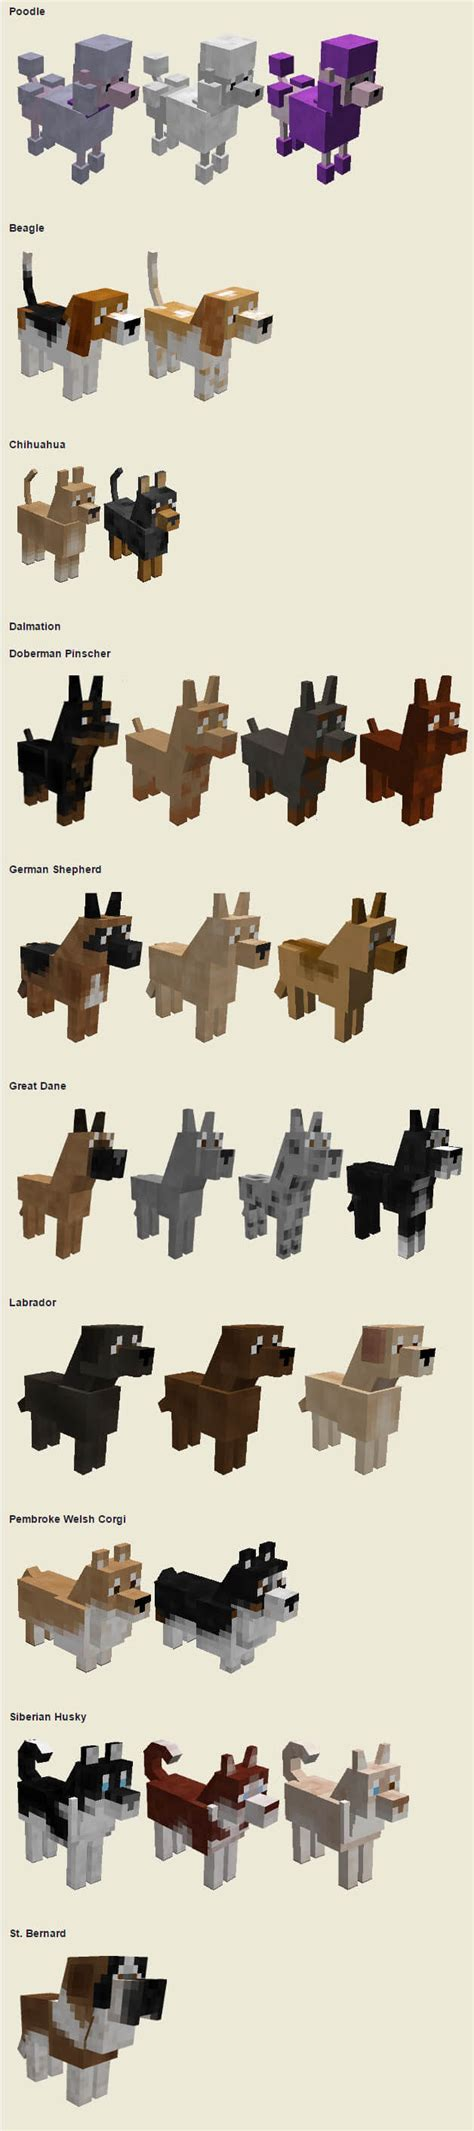 dogs mods minecraft dogs dogica 174 3d minecraft mods songs skins textures